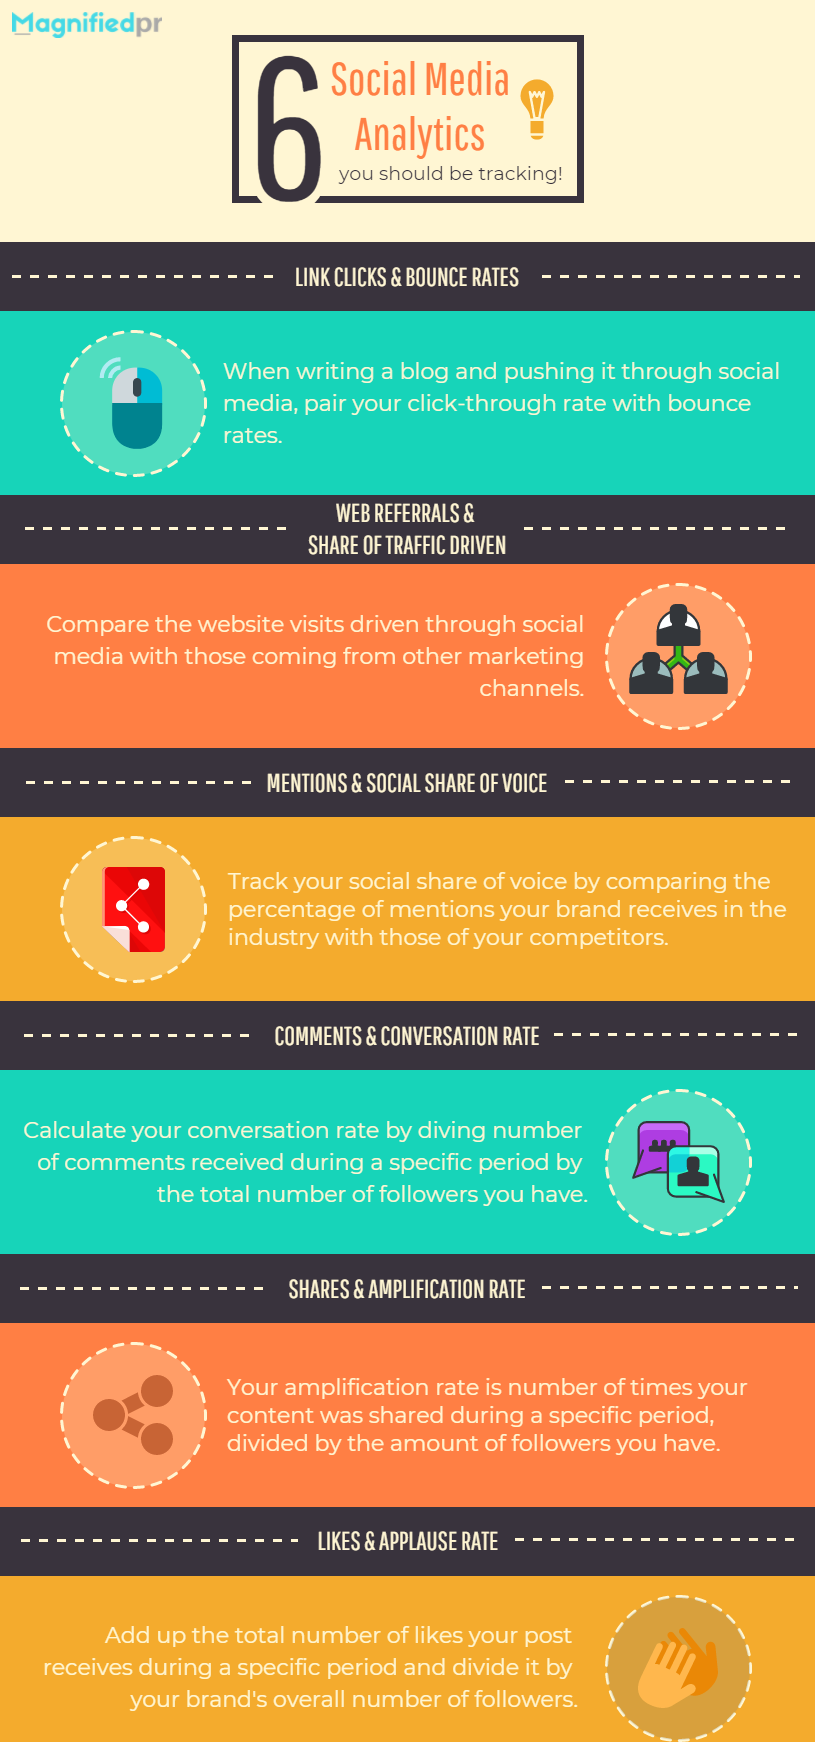 Social Media Analytics Infographic.png